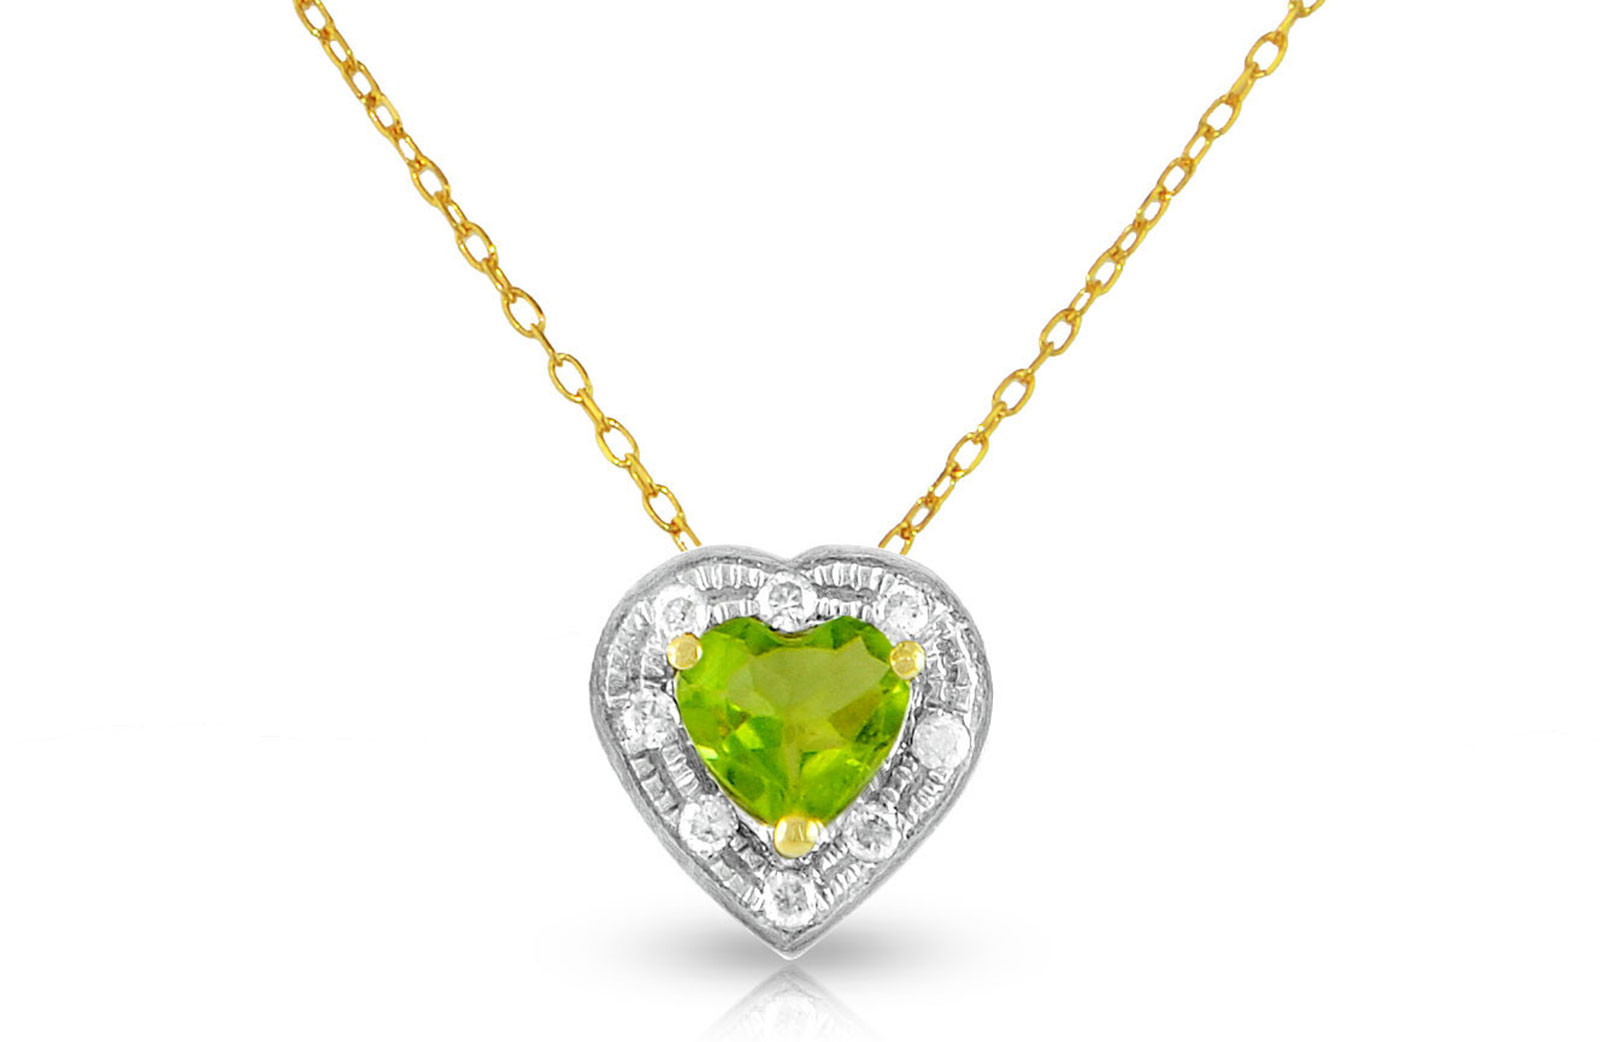 Vera Perla  18K Solid Gold and 0.08Cts Diamonds and 5mm Genuine Peridot Heart Necklace